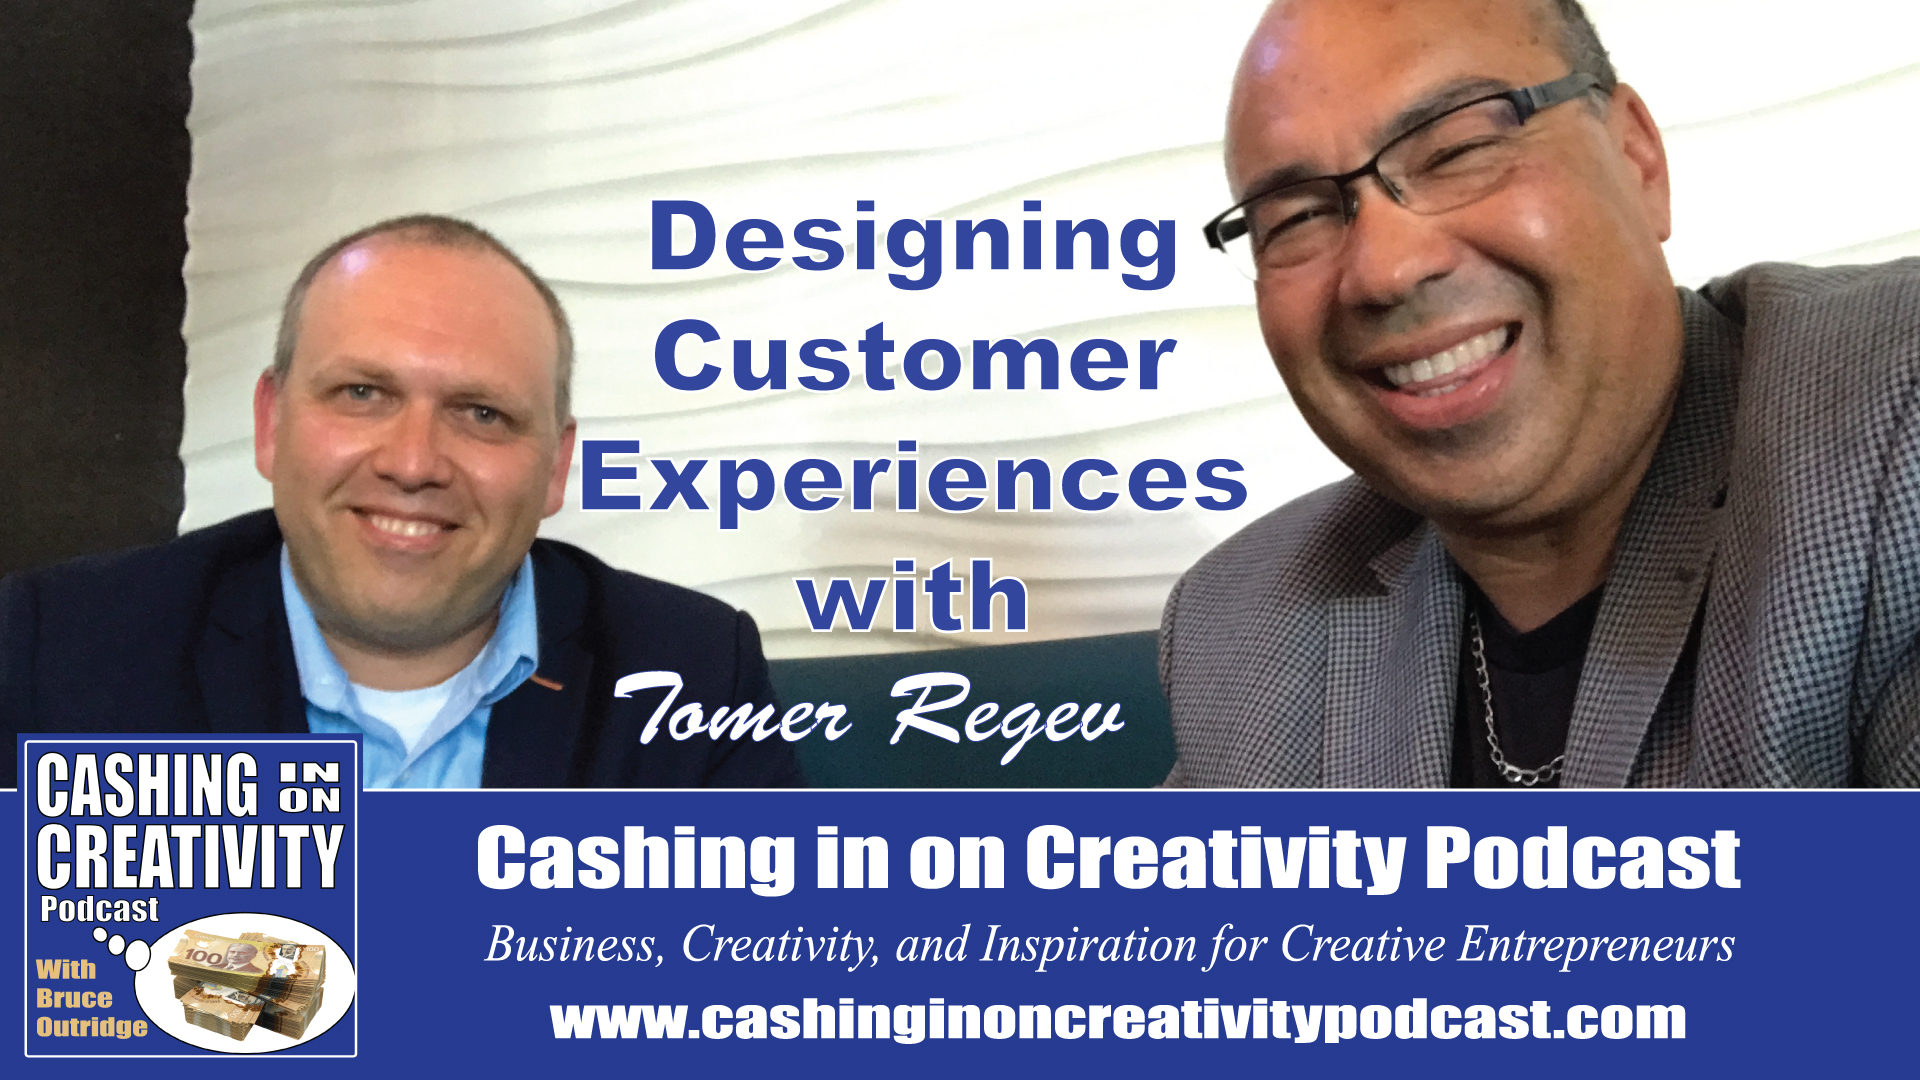 Customer Service with Tomer Regev